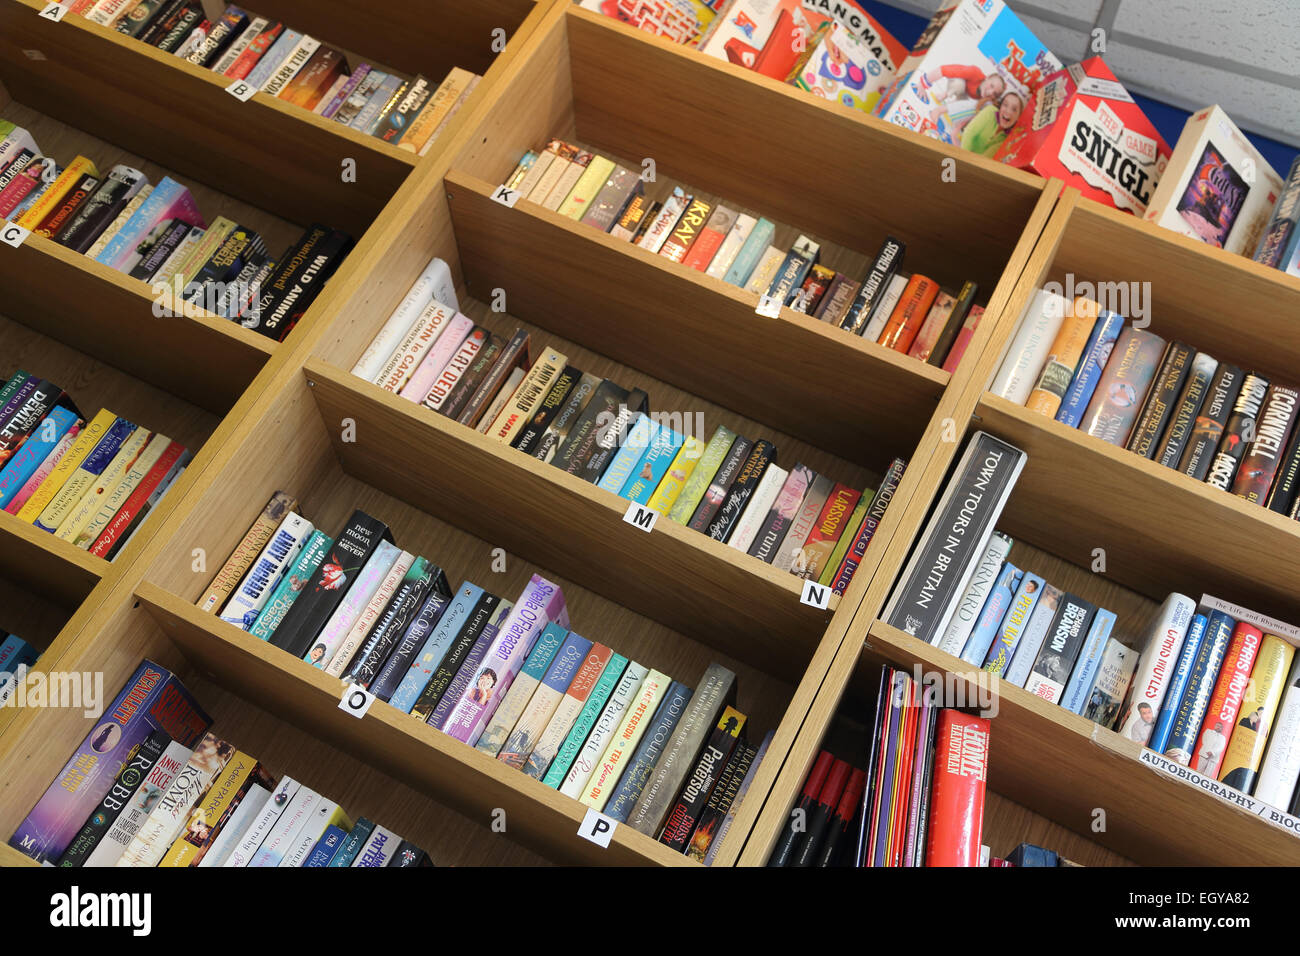 Shelves of books at a public library. - Stock Image